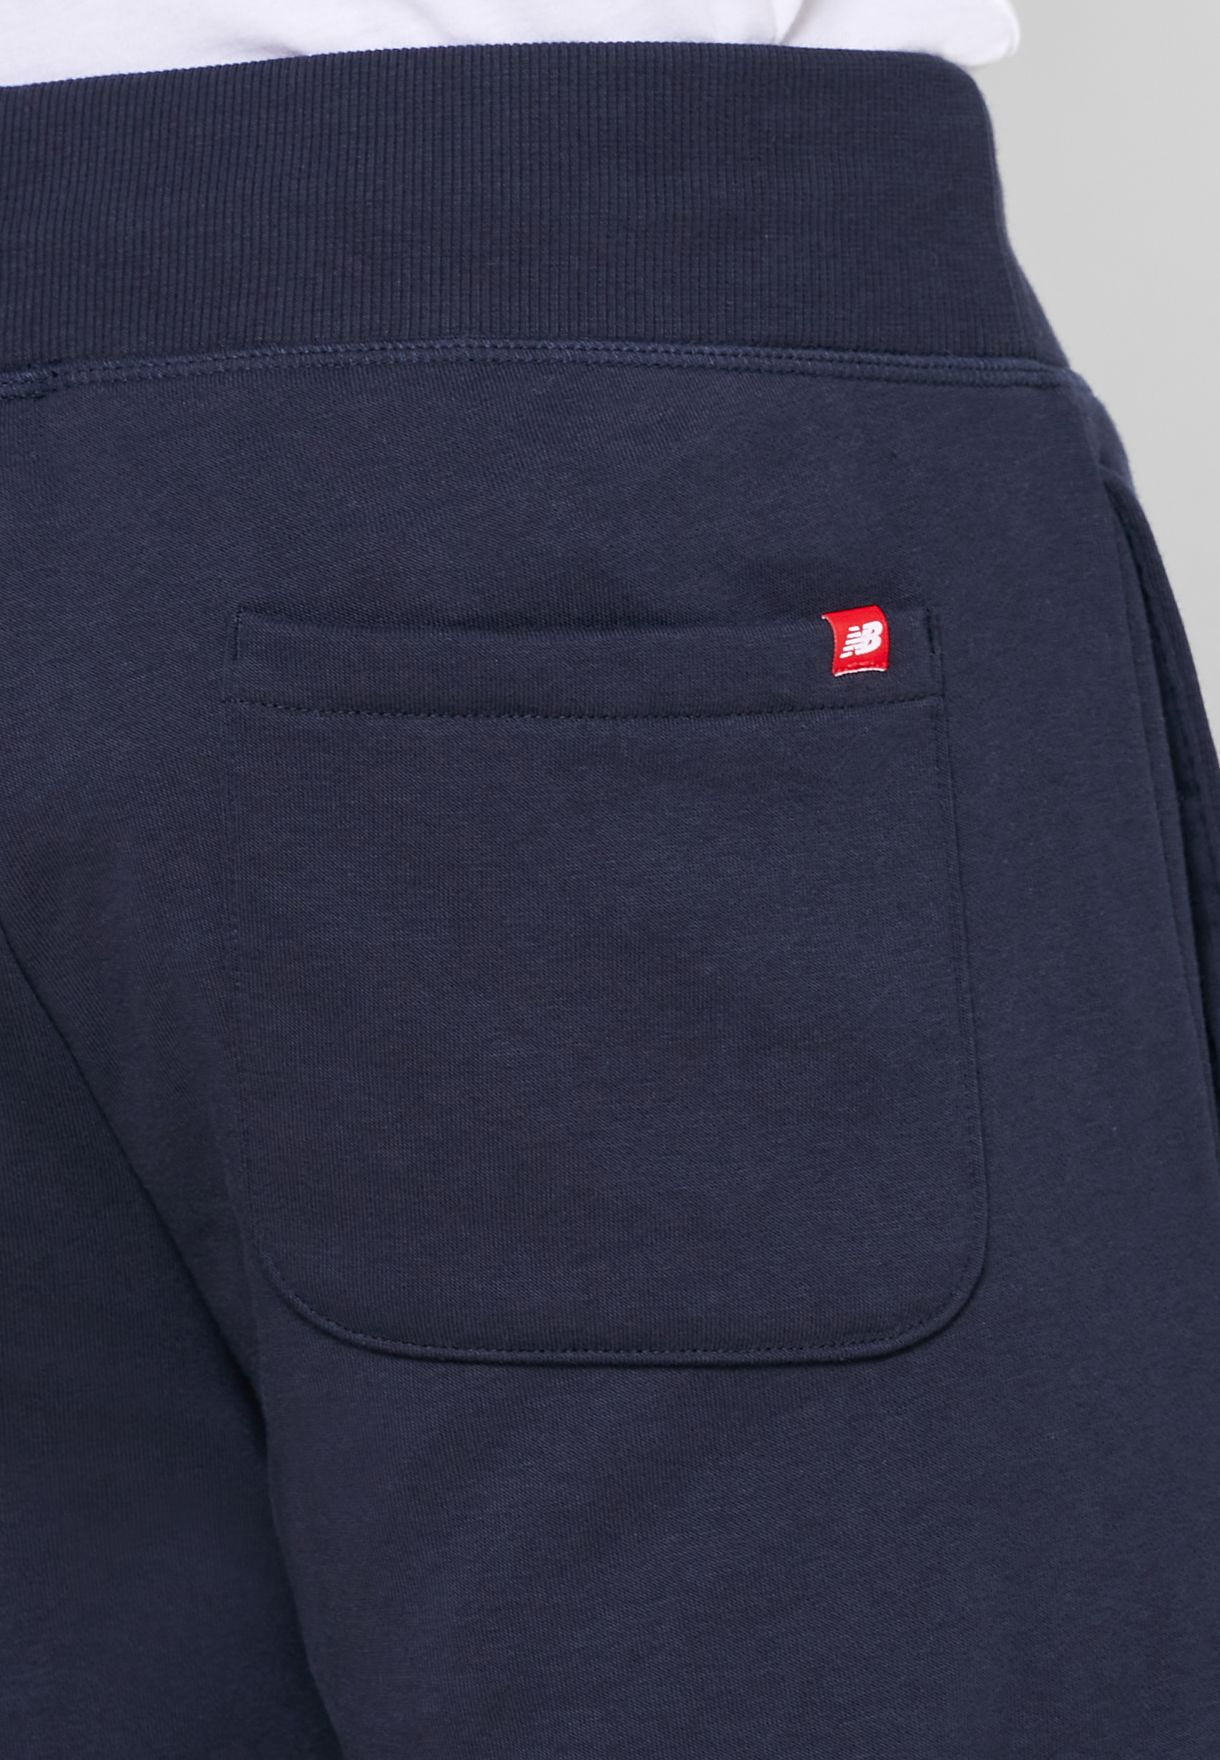 Essential Stacked Logo Sweatpants